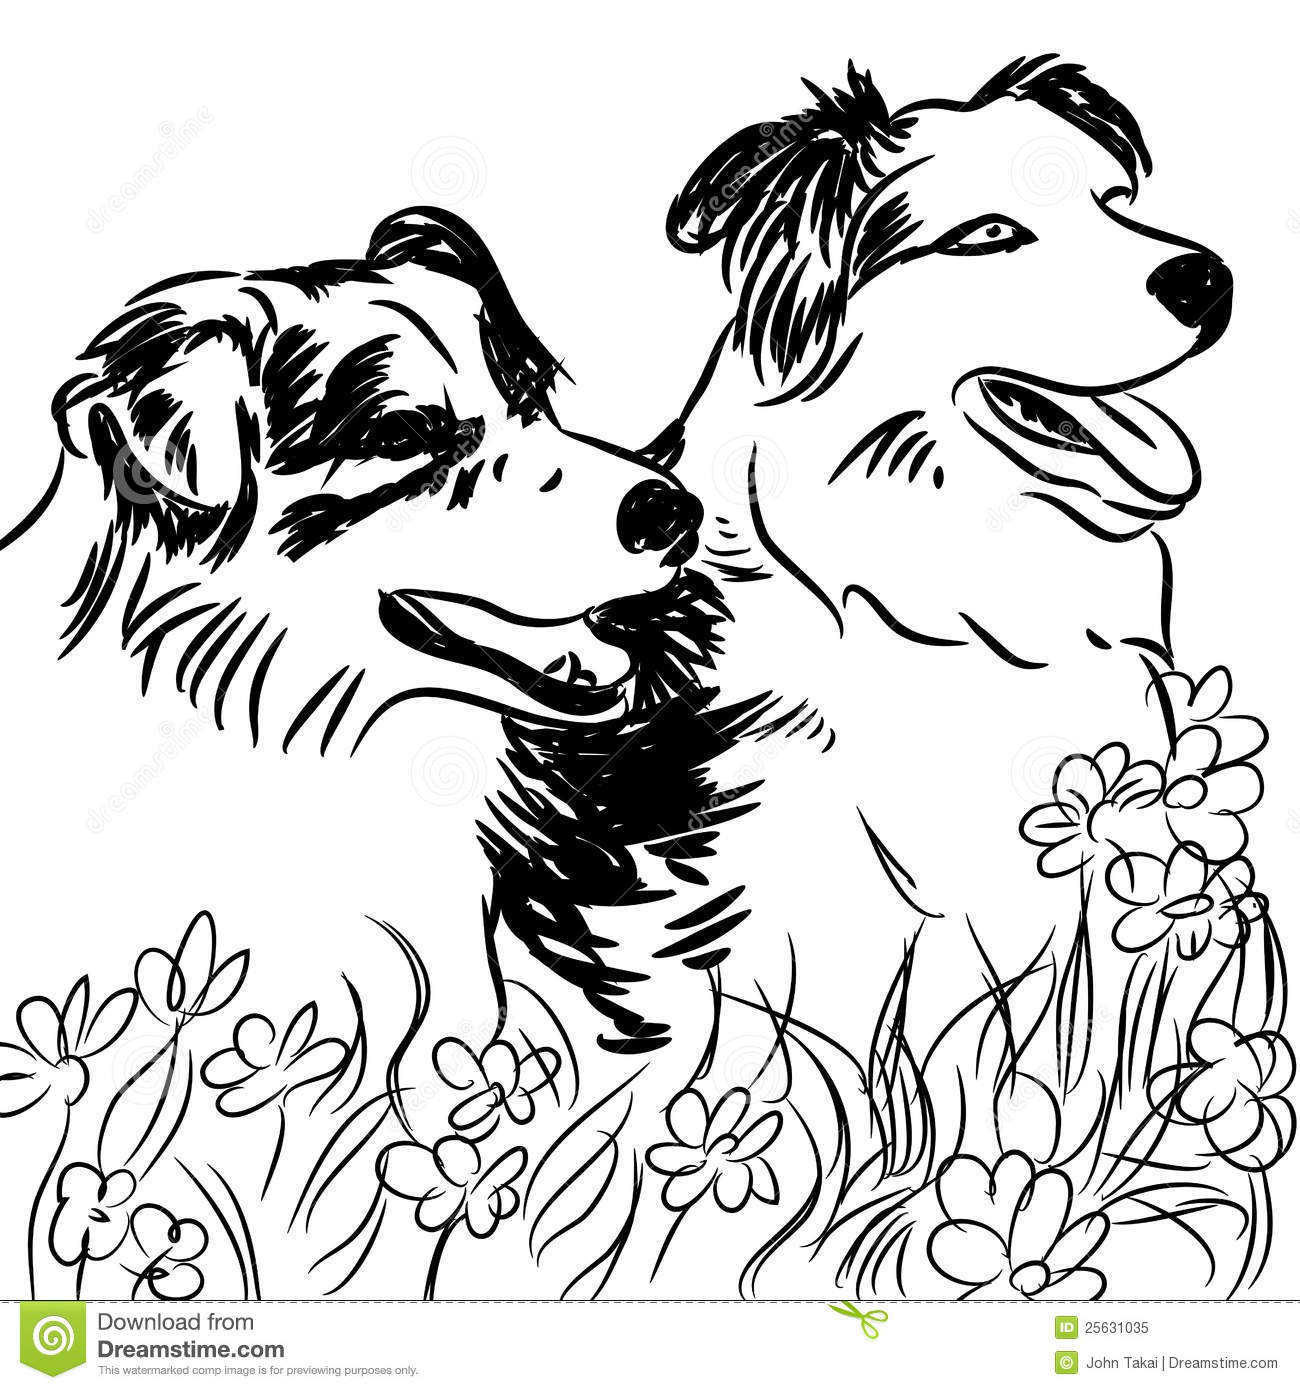 Collie coloring #15, Download drawings